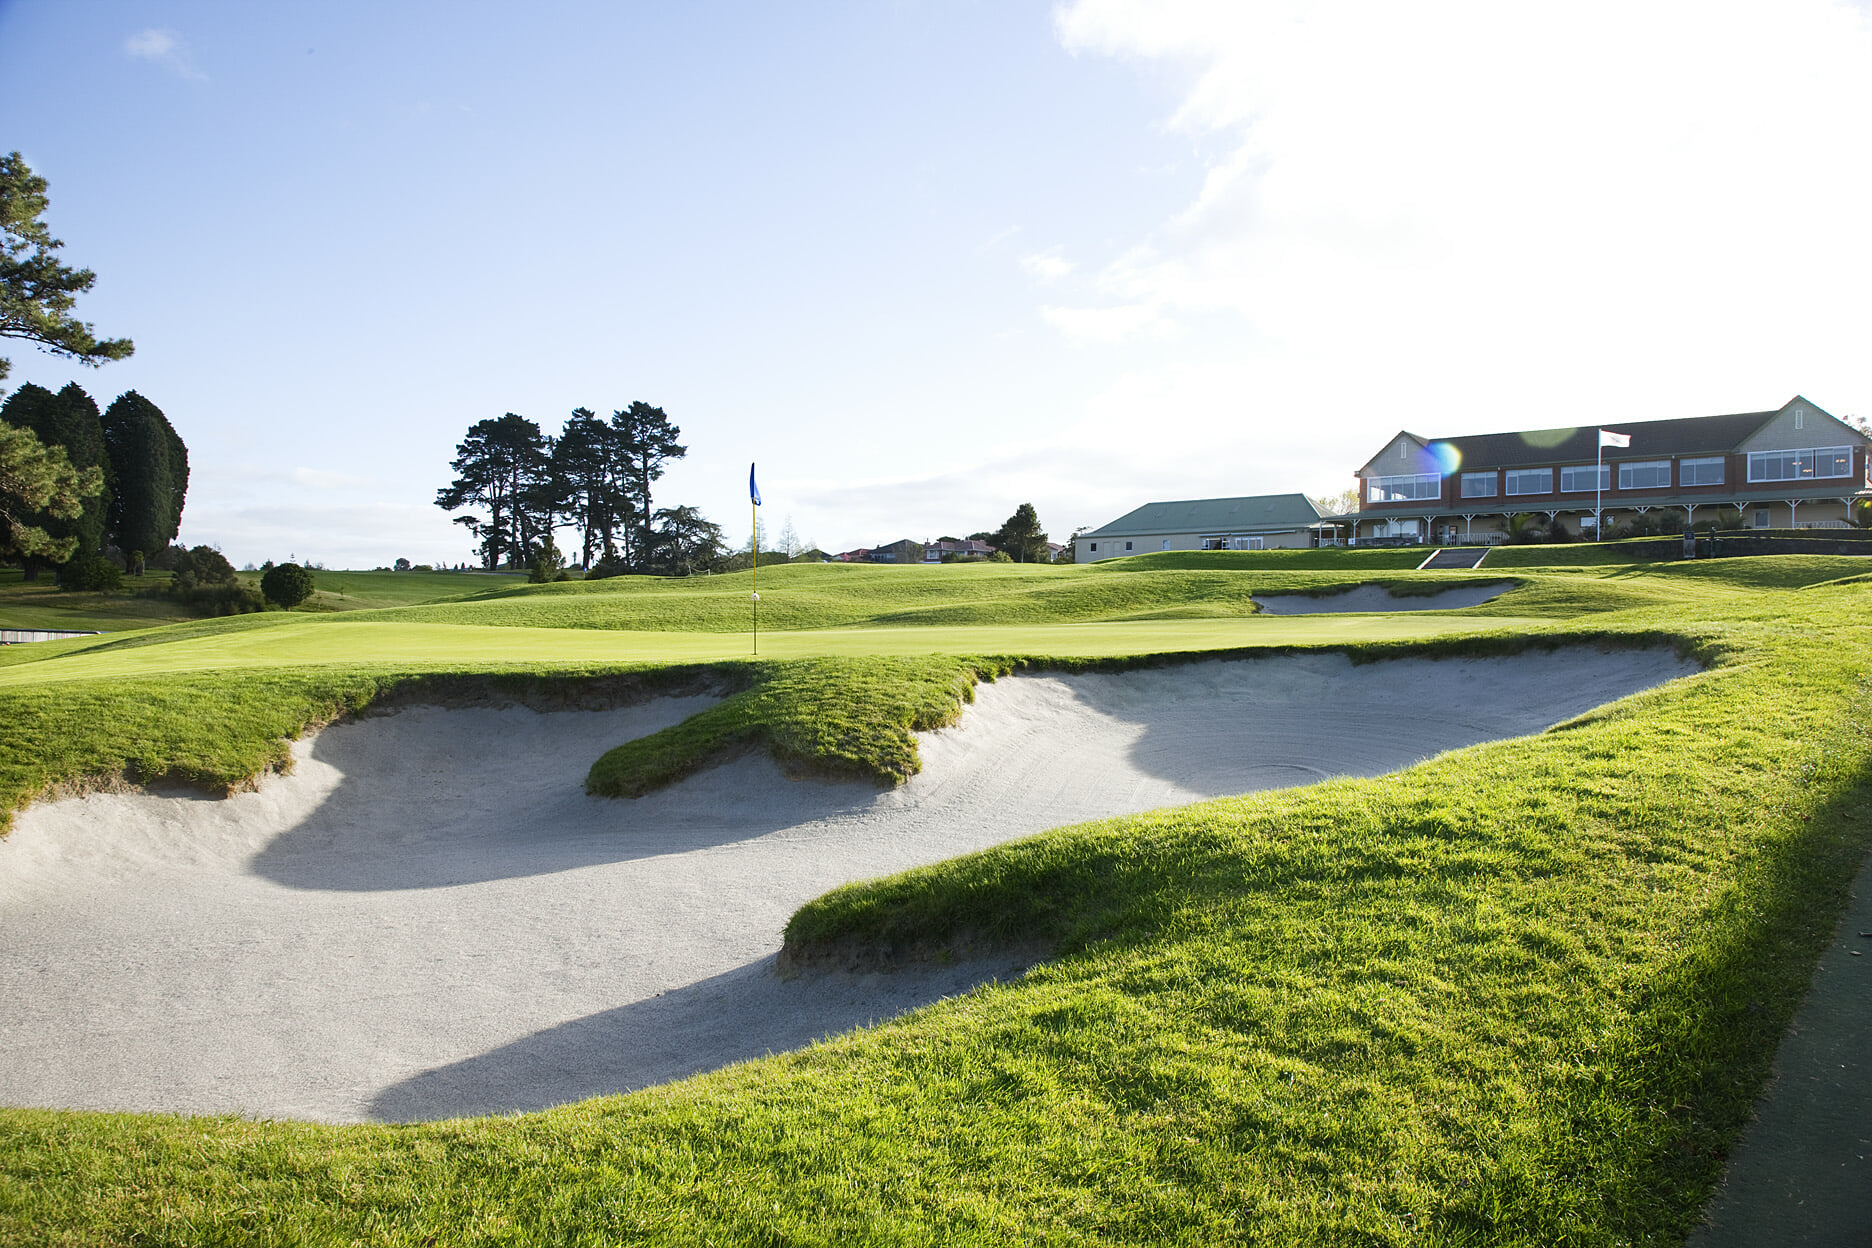 Image displaying the 18th green in the foreground at Titirangi Golf Clubhouse in the background